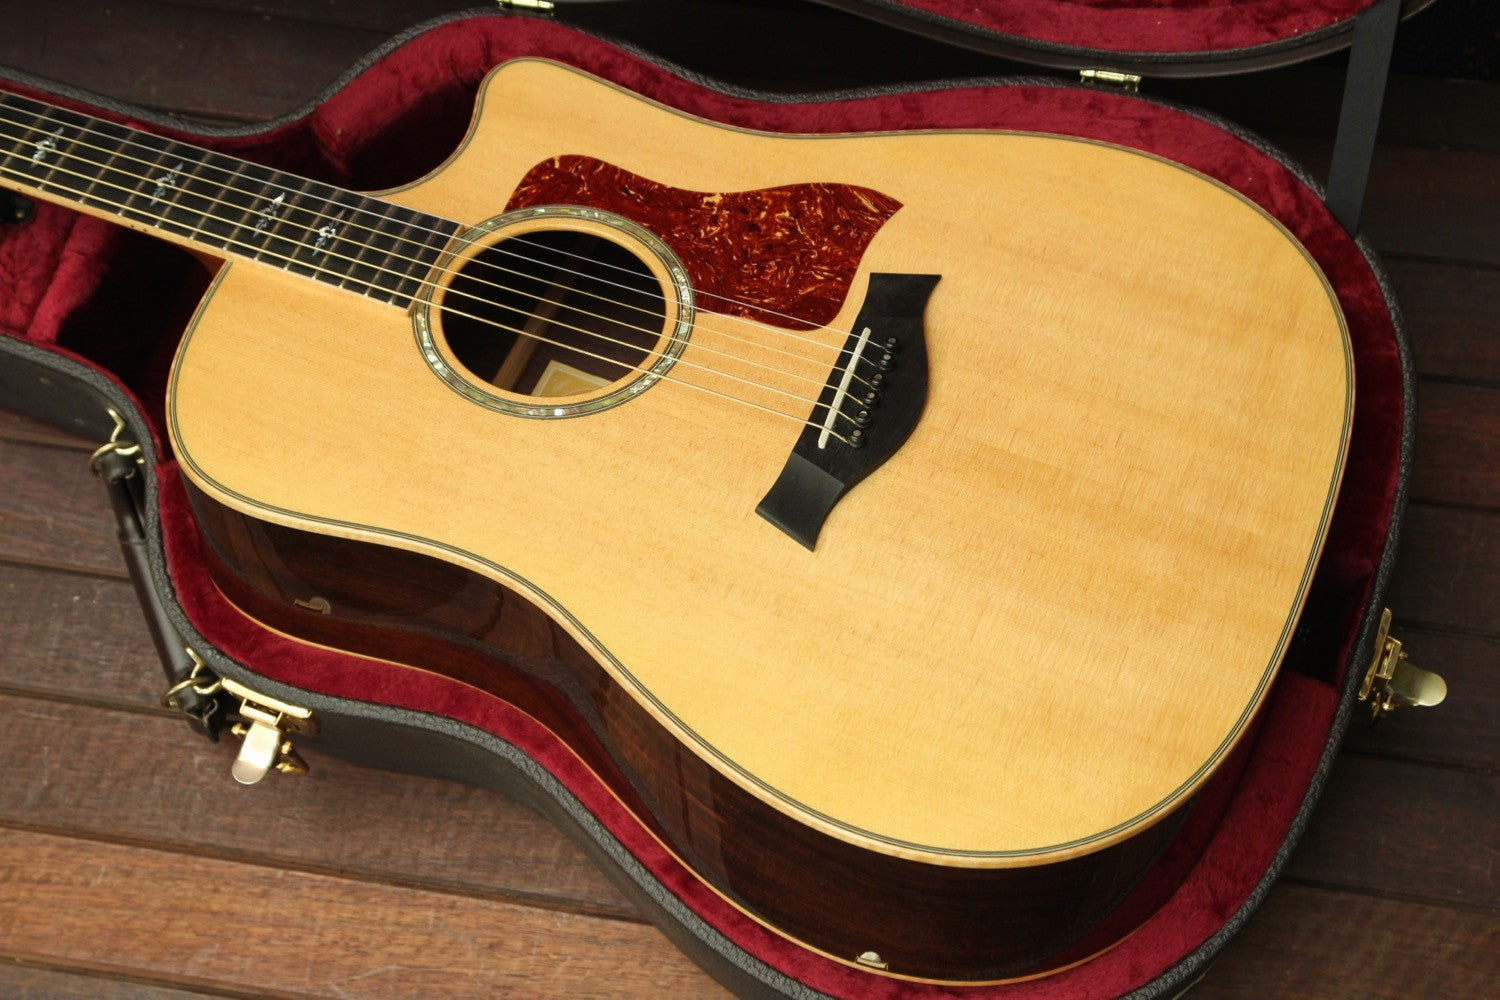 Taylor 810ce Fall Limited Madagascar Rosewood Dreadnought 2006 Pre-Owned - The Rock Inn